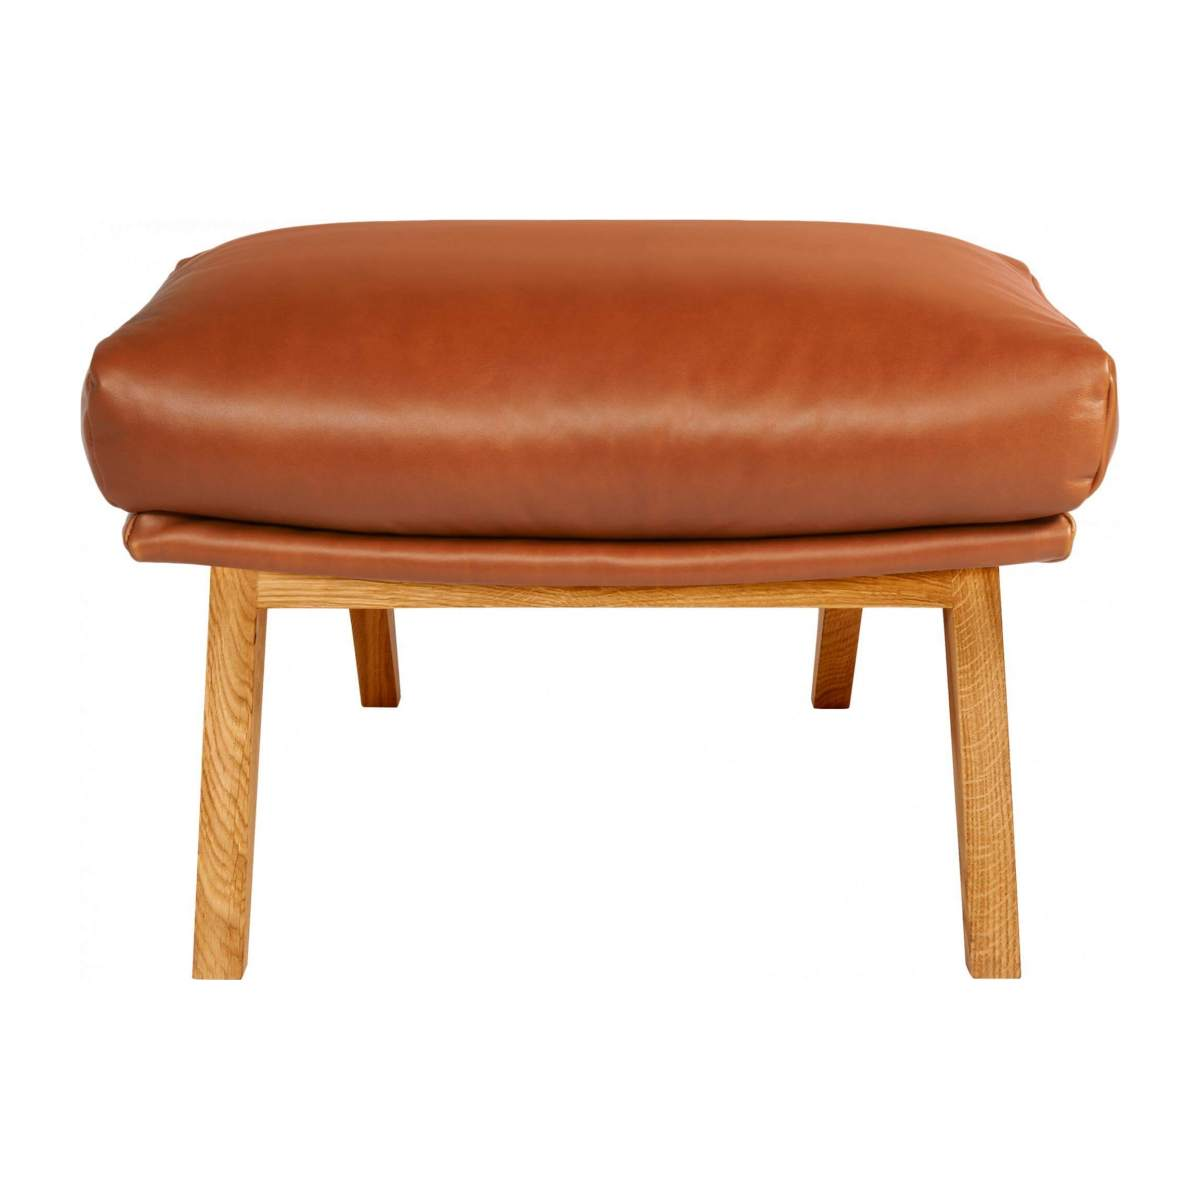 Footstool in aniline Vintage Leather, old chestnut with oak legs n°1